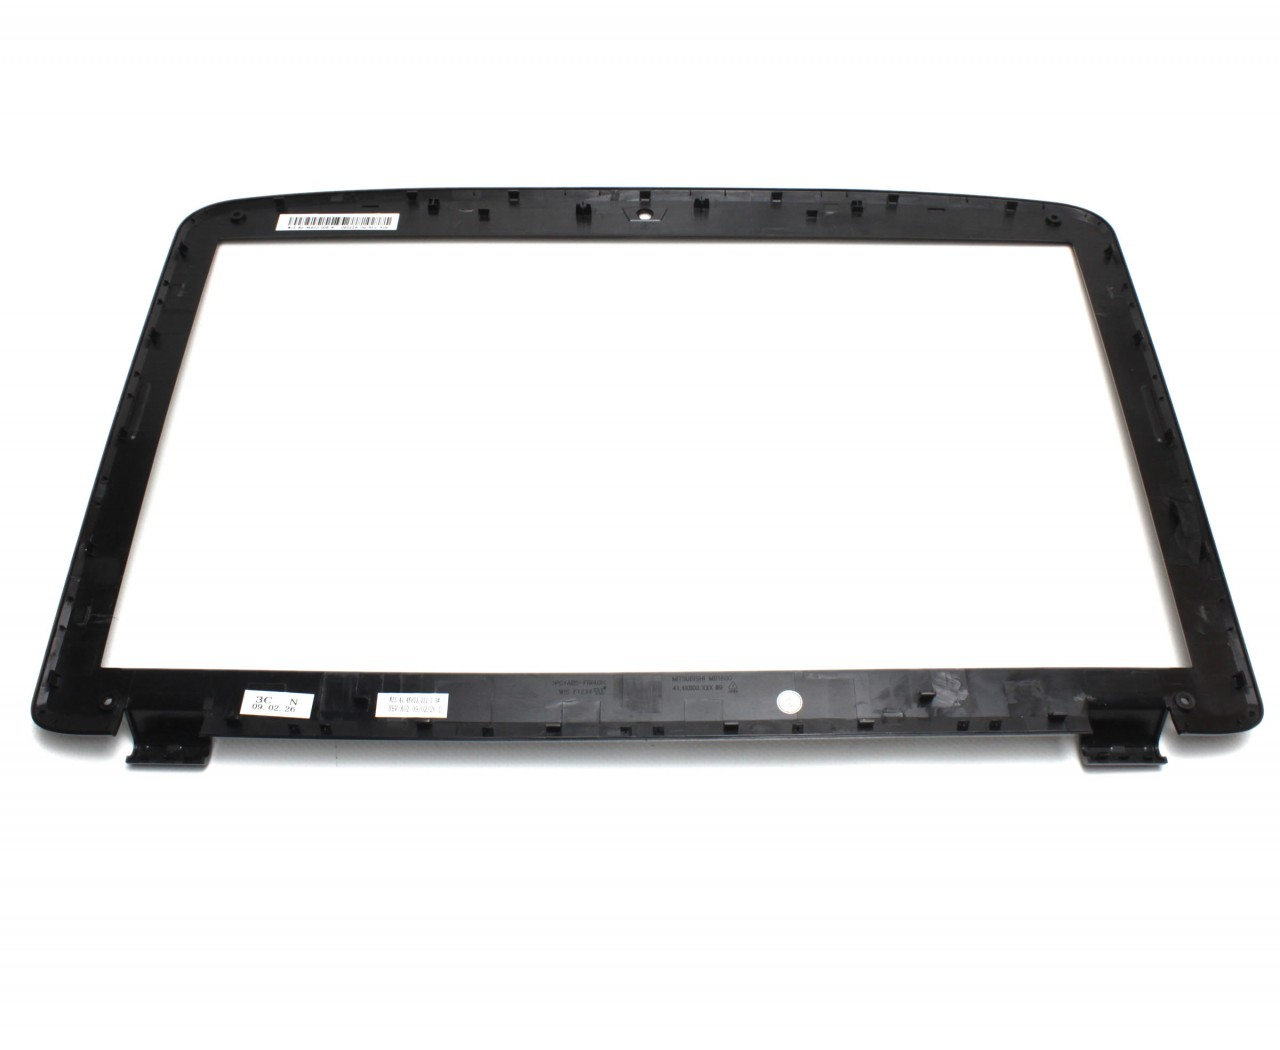 Rama Display Acer 60.PAQ01.001 Bezel Front Cover Neagra imagine